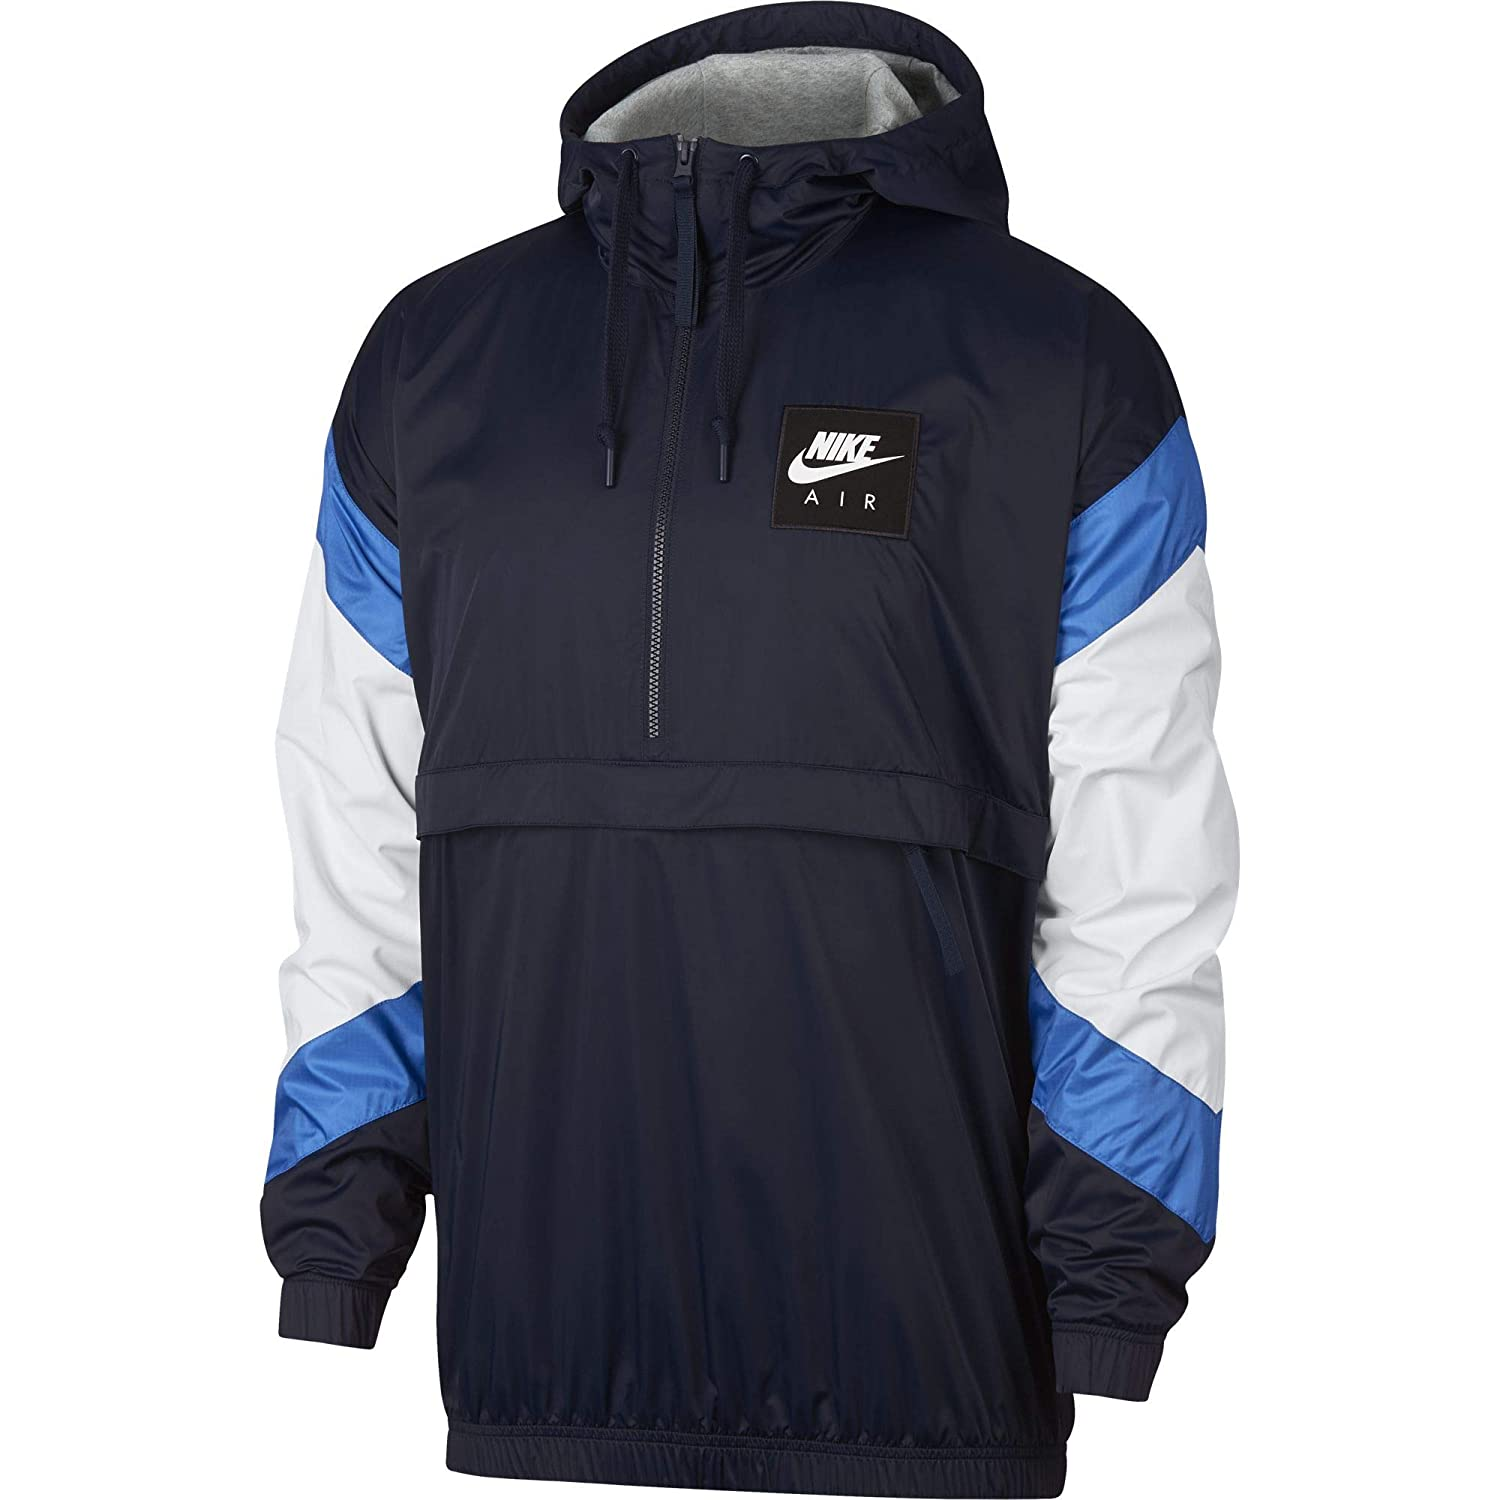 Amazon.com: Nike Sportswear Air Mens Woven Anorak Jacket ...